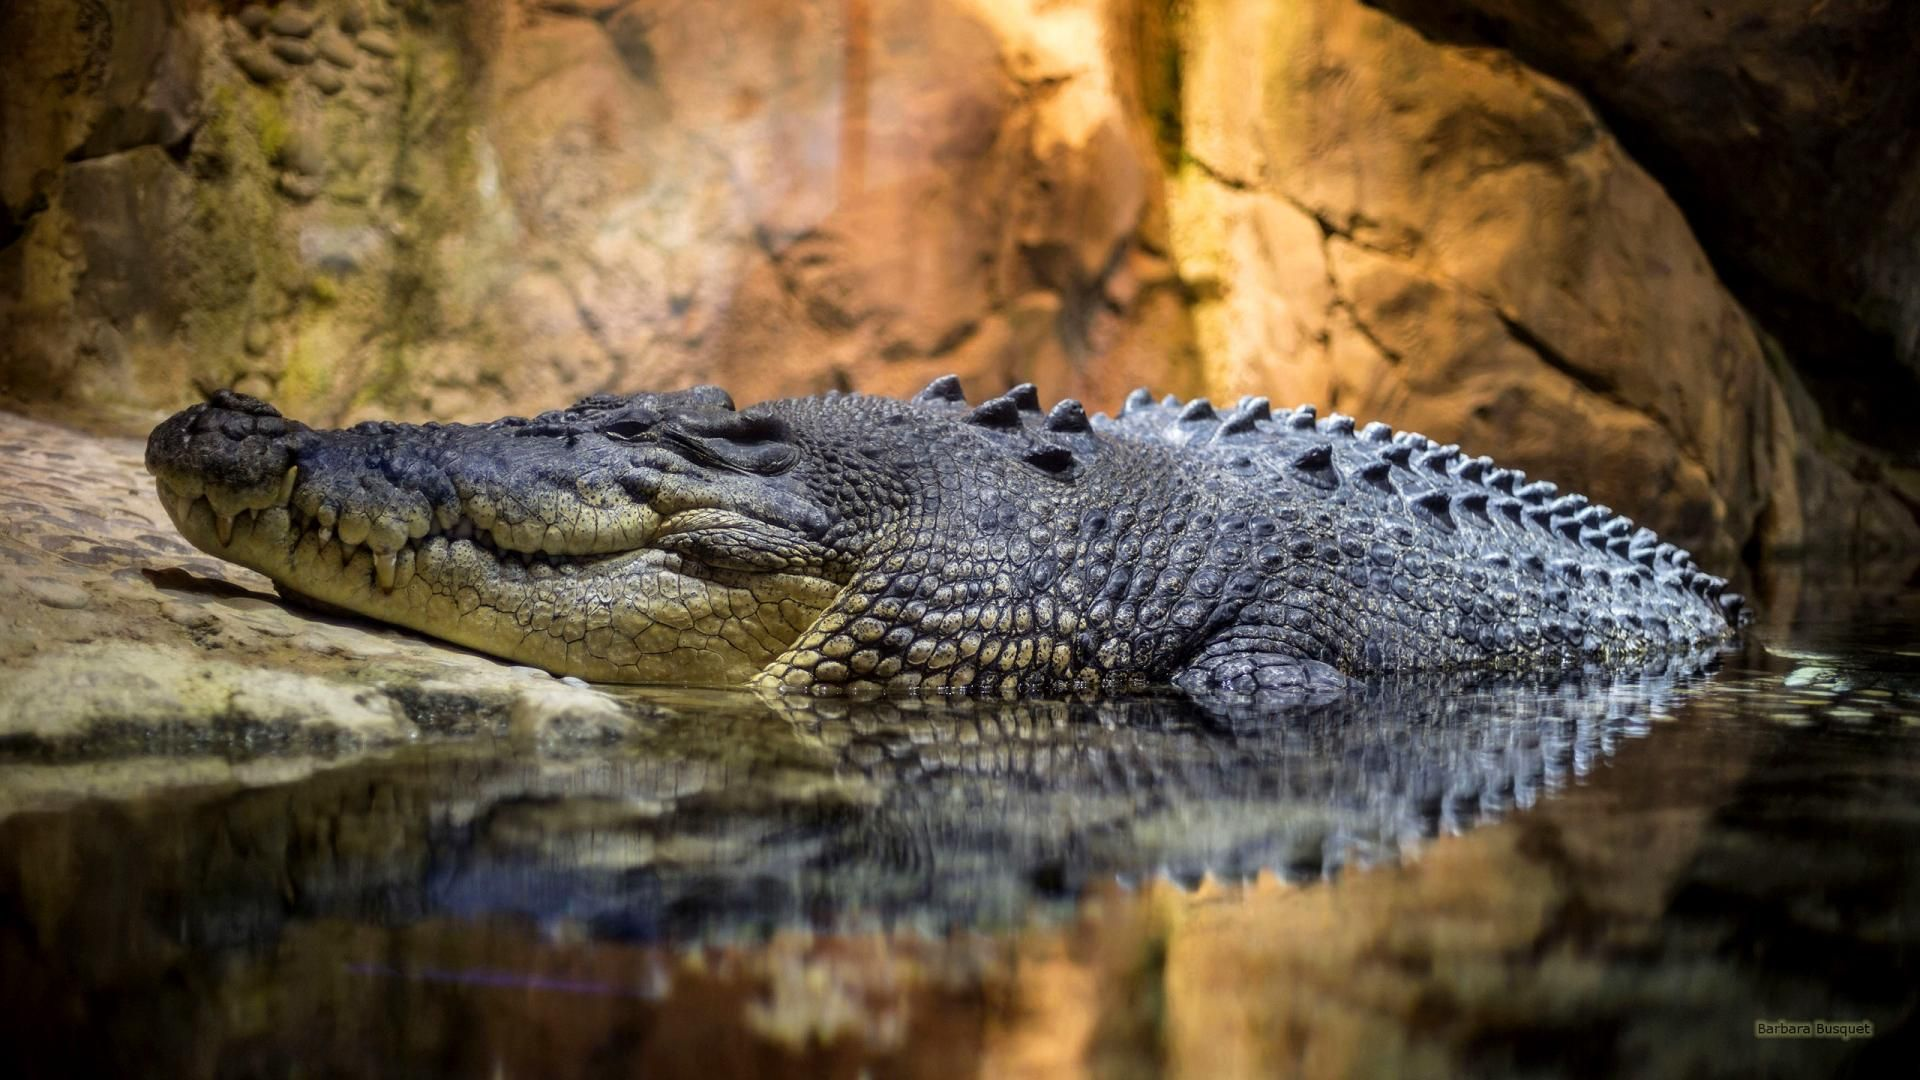 Pictures Of Crocodiles And Alligators